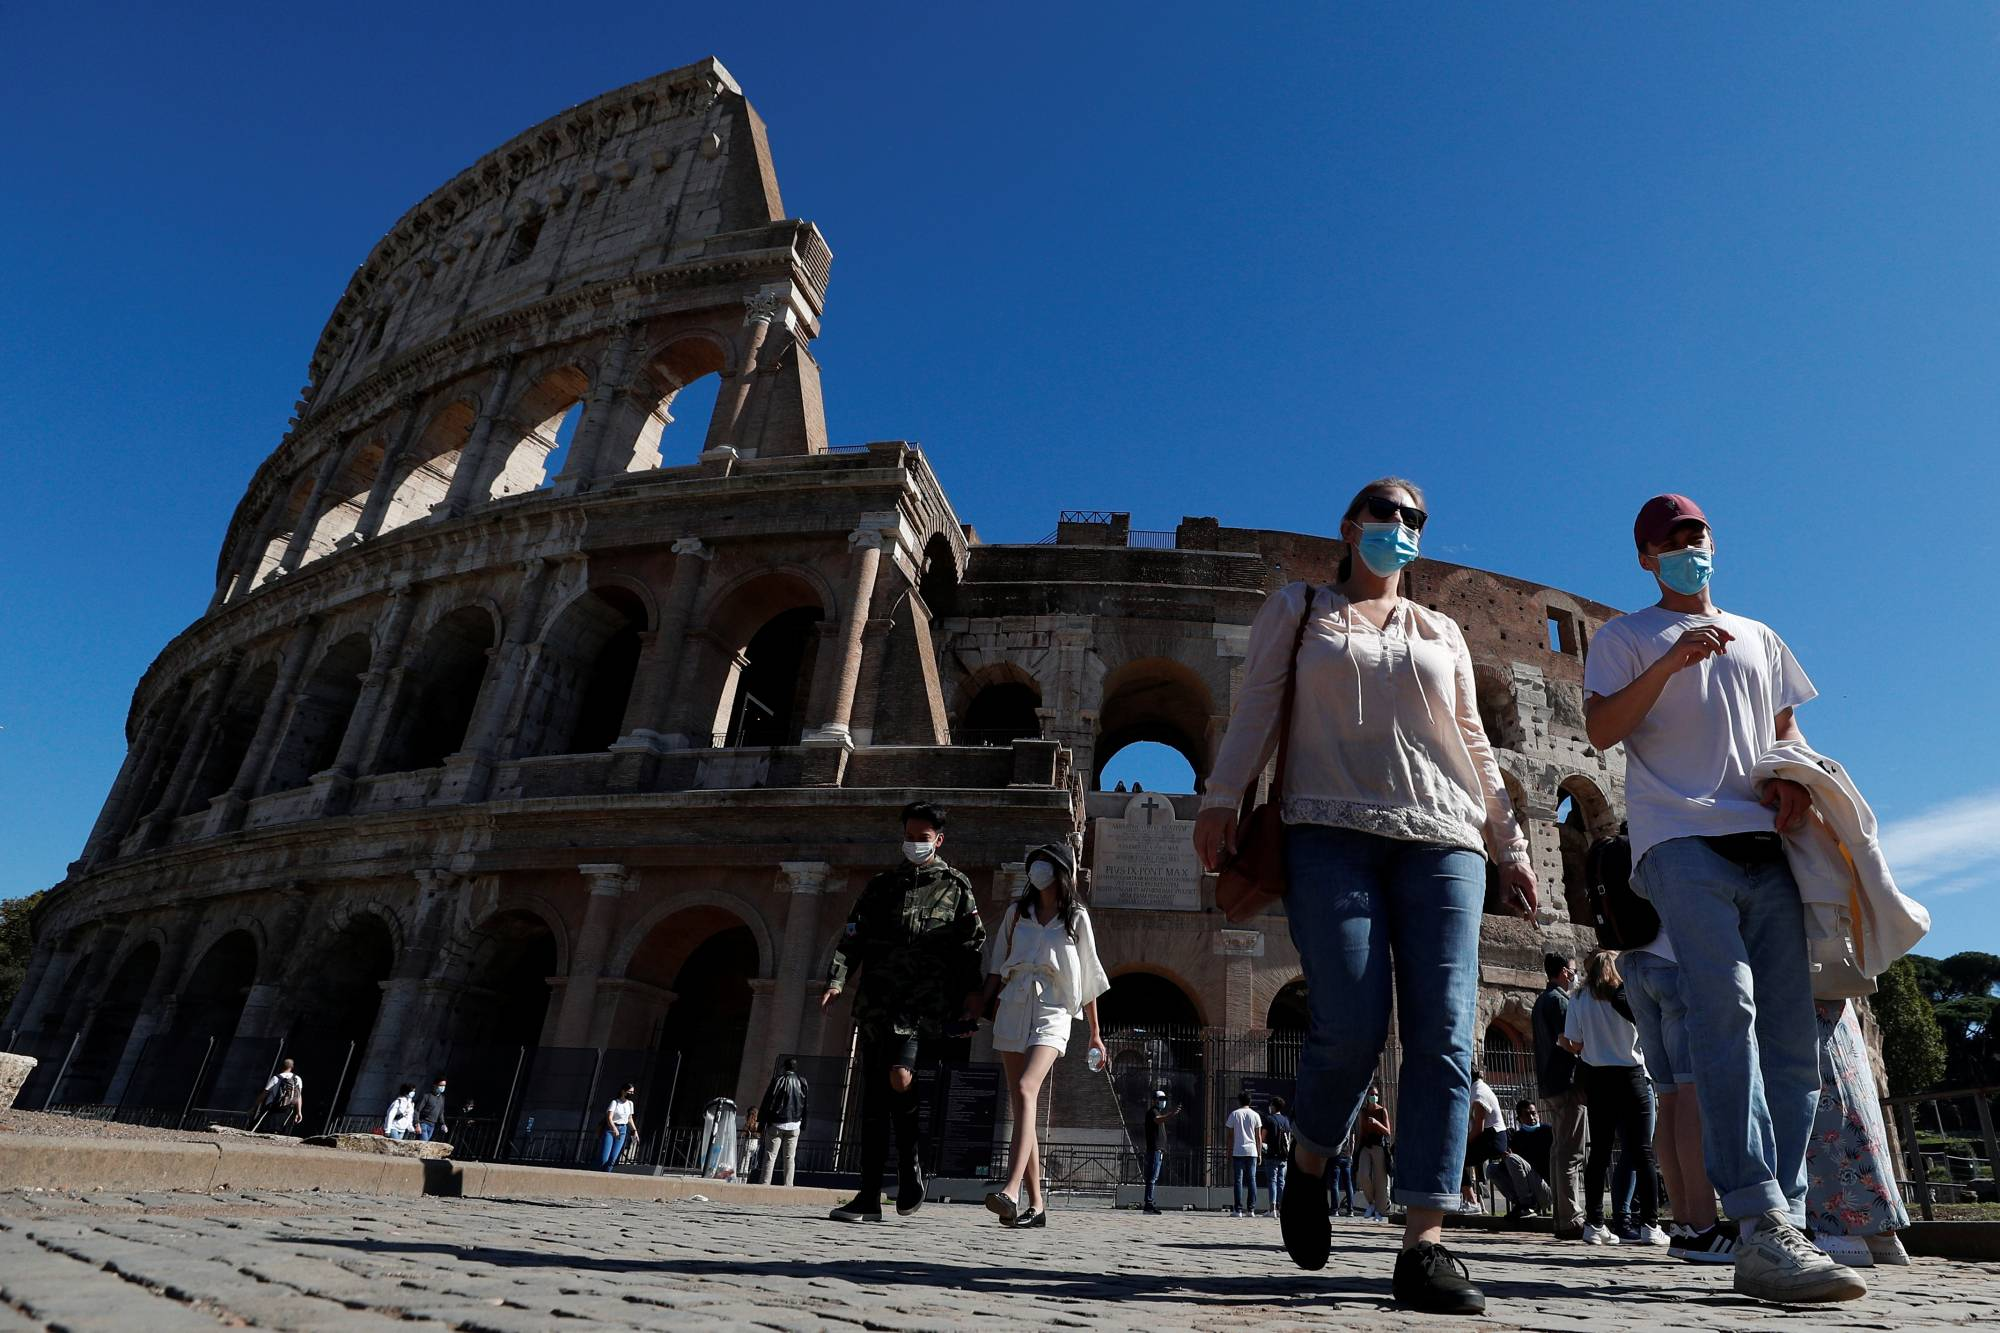 People wearing protective face masks walk past the Colosseum as local authorities in Rome ordered face coverings to be worn at all times outdoors. | REUTERS